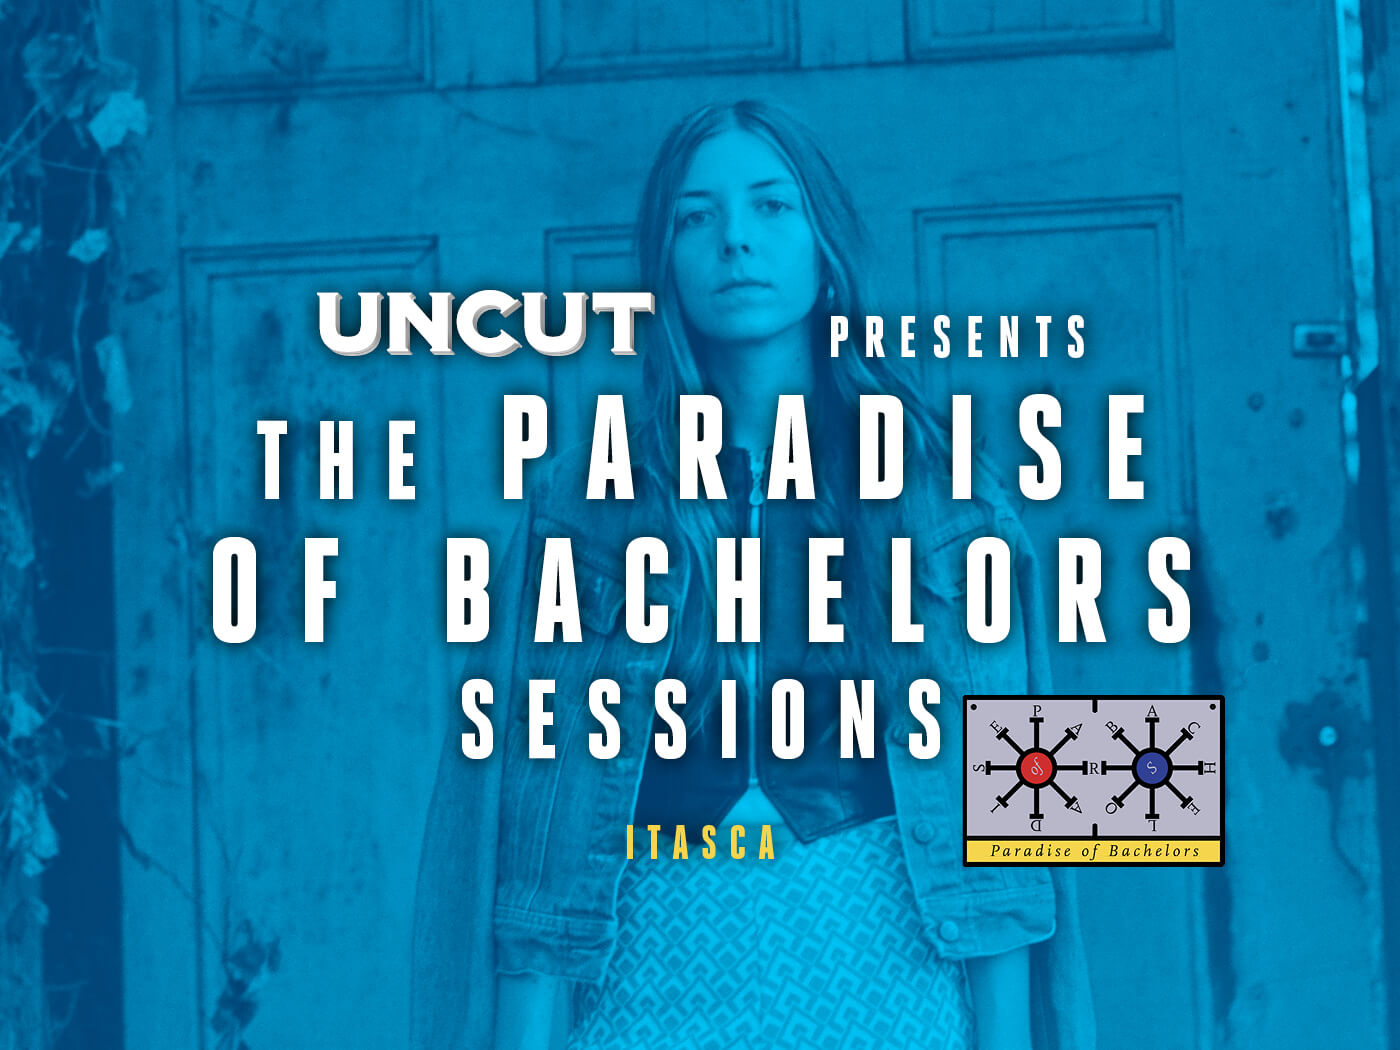 Watch Itasca's exclusive Uncut session